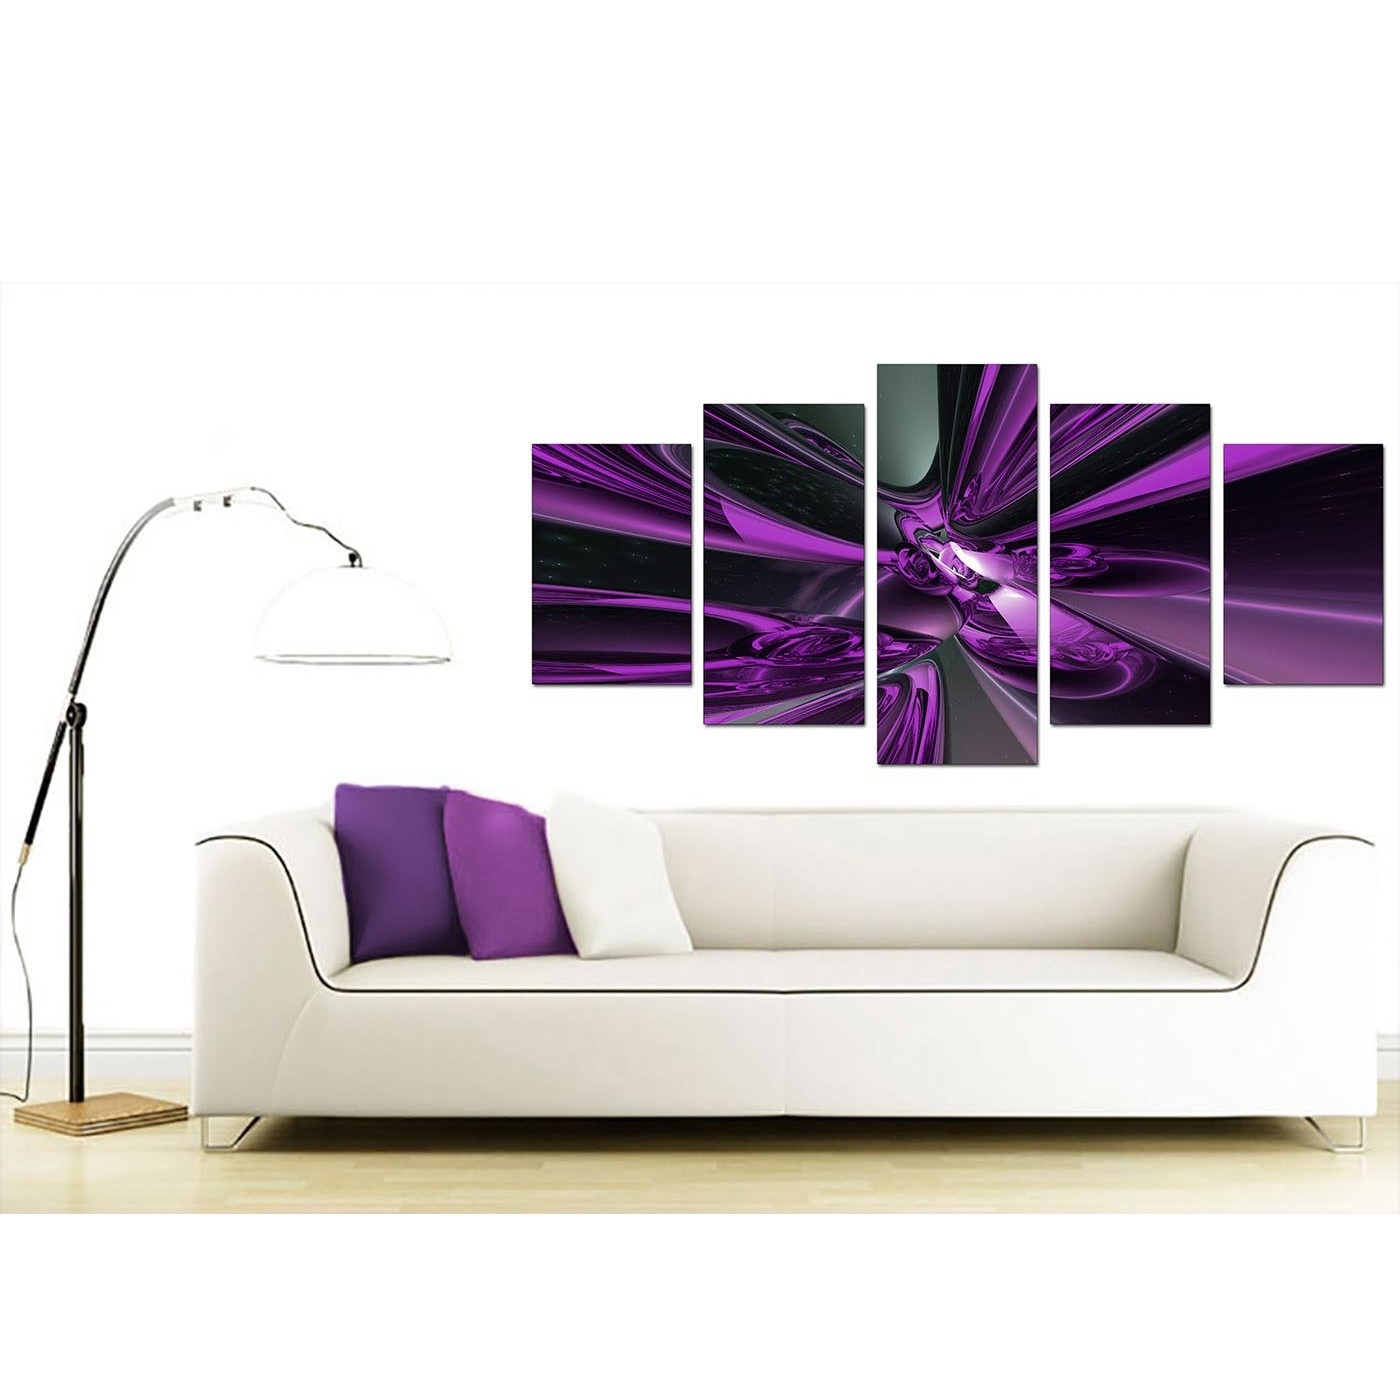 Extra Large Purple Abstract Canvas Prints Uk – 5 Piece With Regard To Most Recent Cheap Large Wall Art (View 17 of 20)